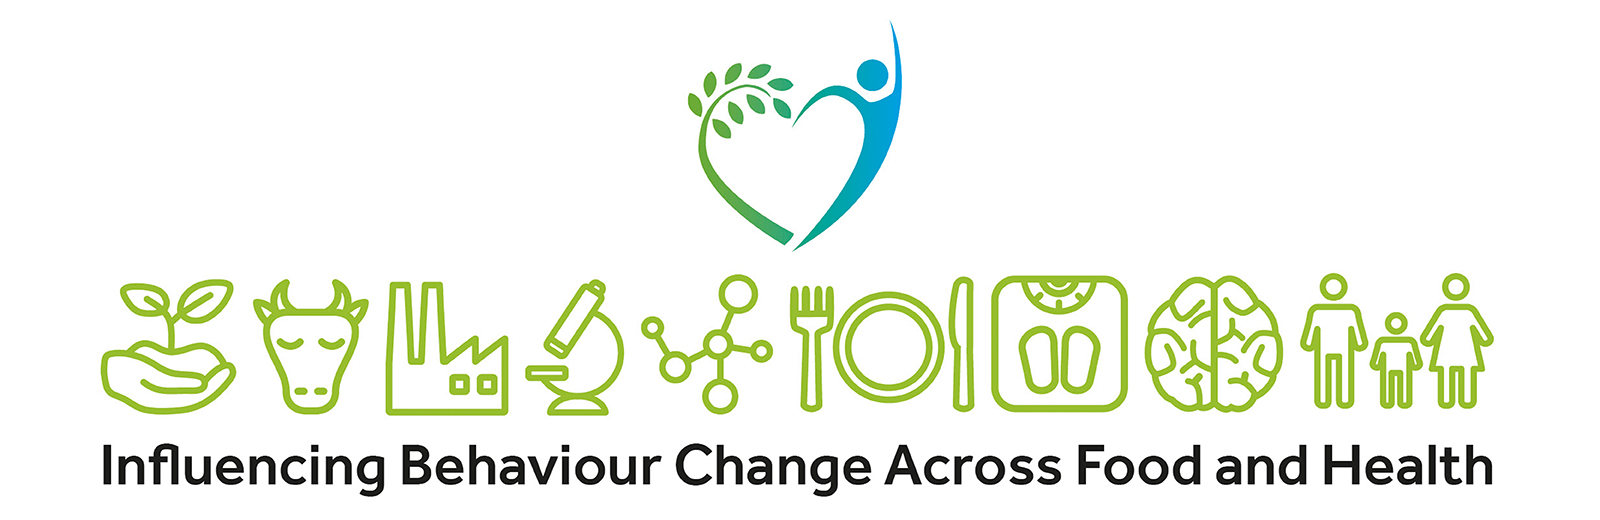 Influencing Behaviour Change Across Food and Health